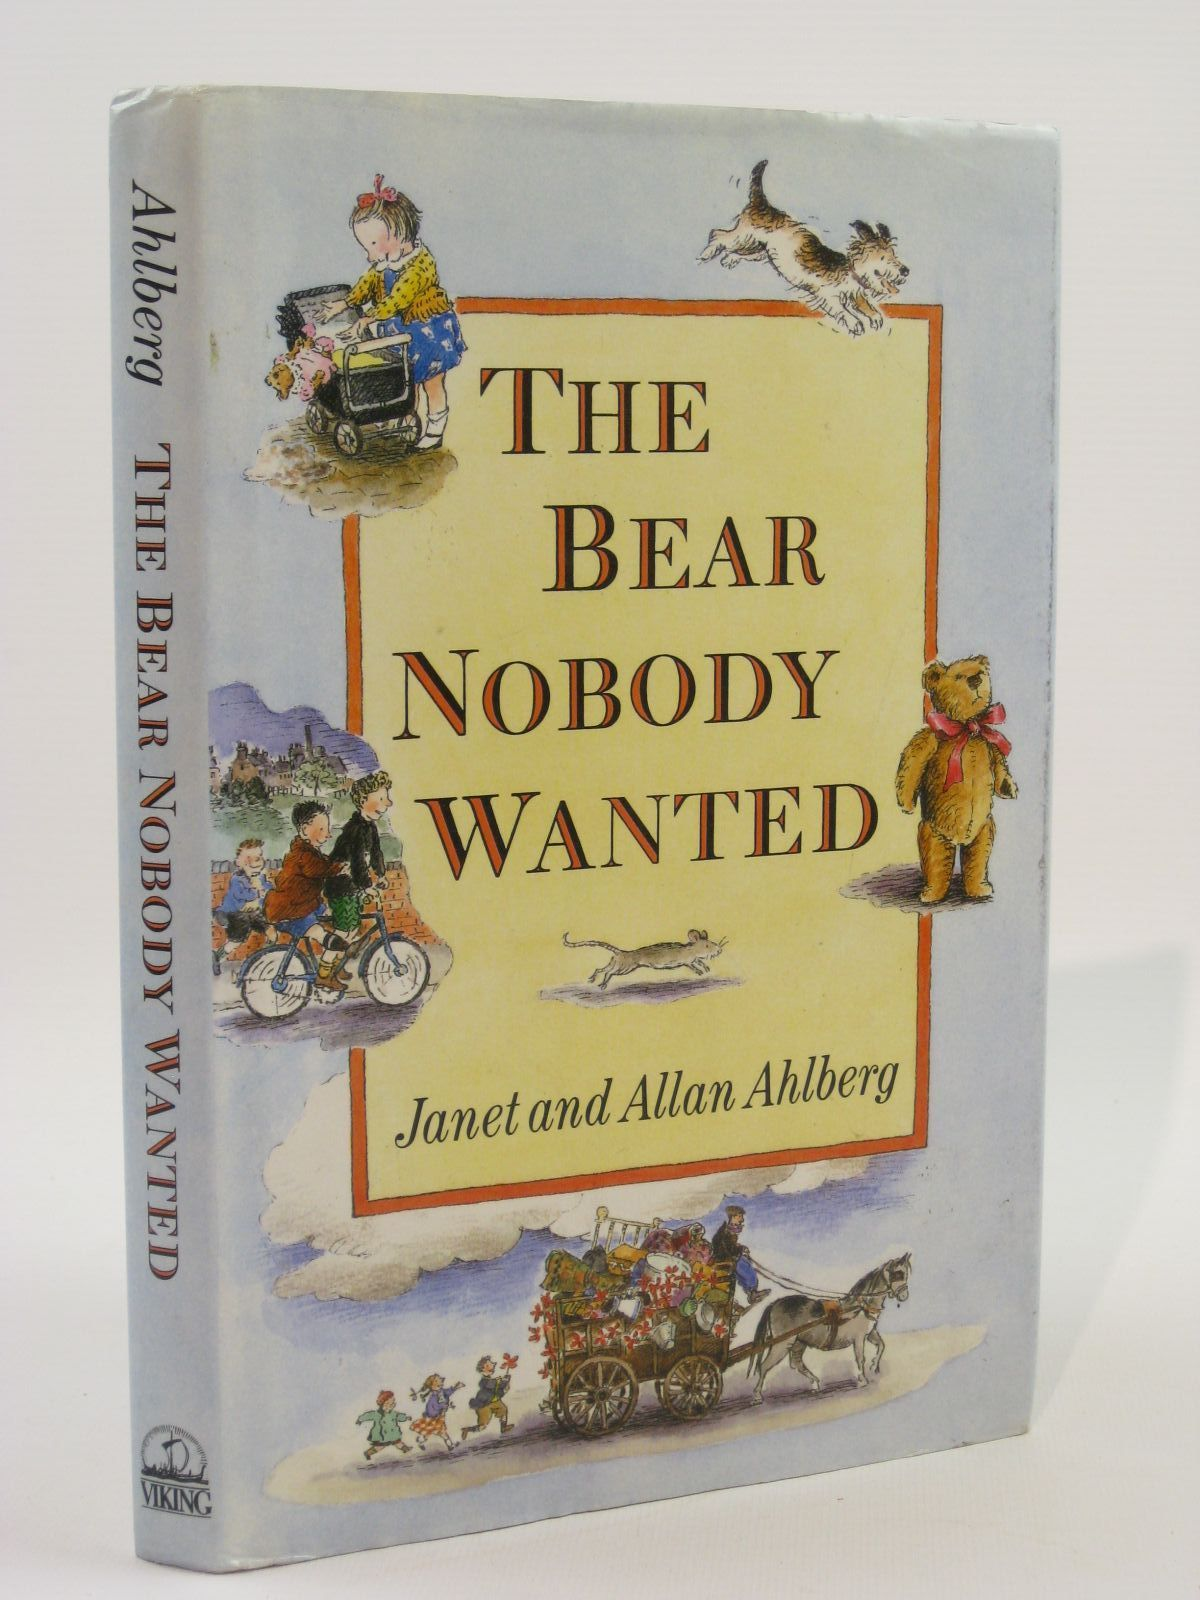 Photo of THE BEAR NOBODY WANTED written by Ahlberg, Allan illustrated by Ahlberg, Janet published by Viking (STOCK CODE: 1507579)  for sale by Stella & Rose's Books